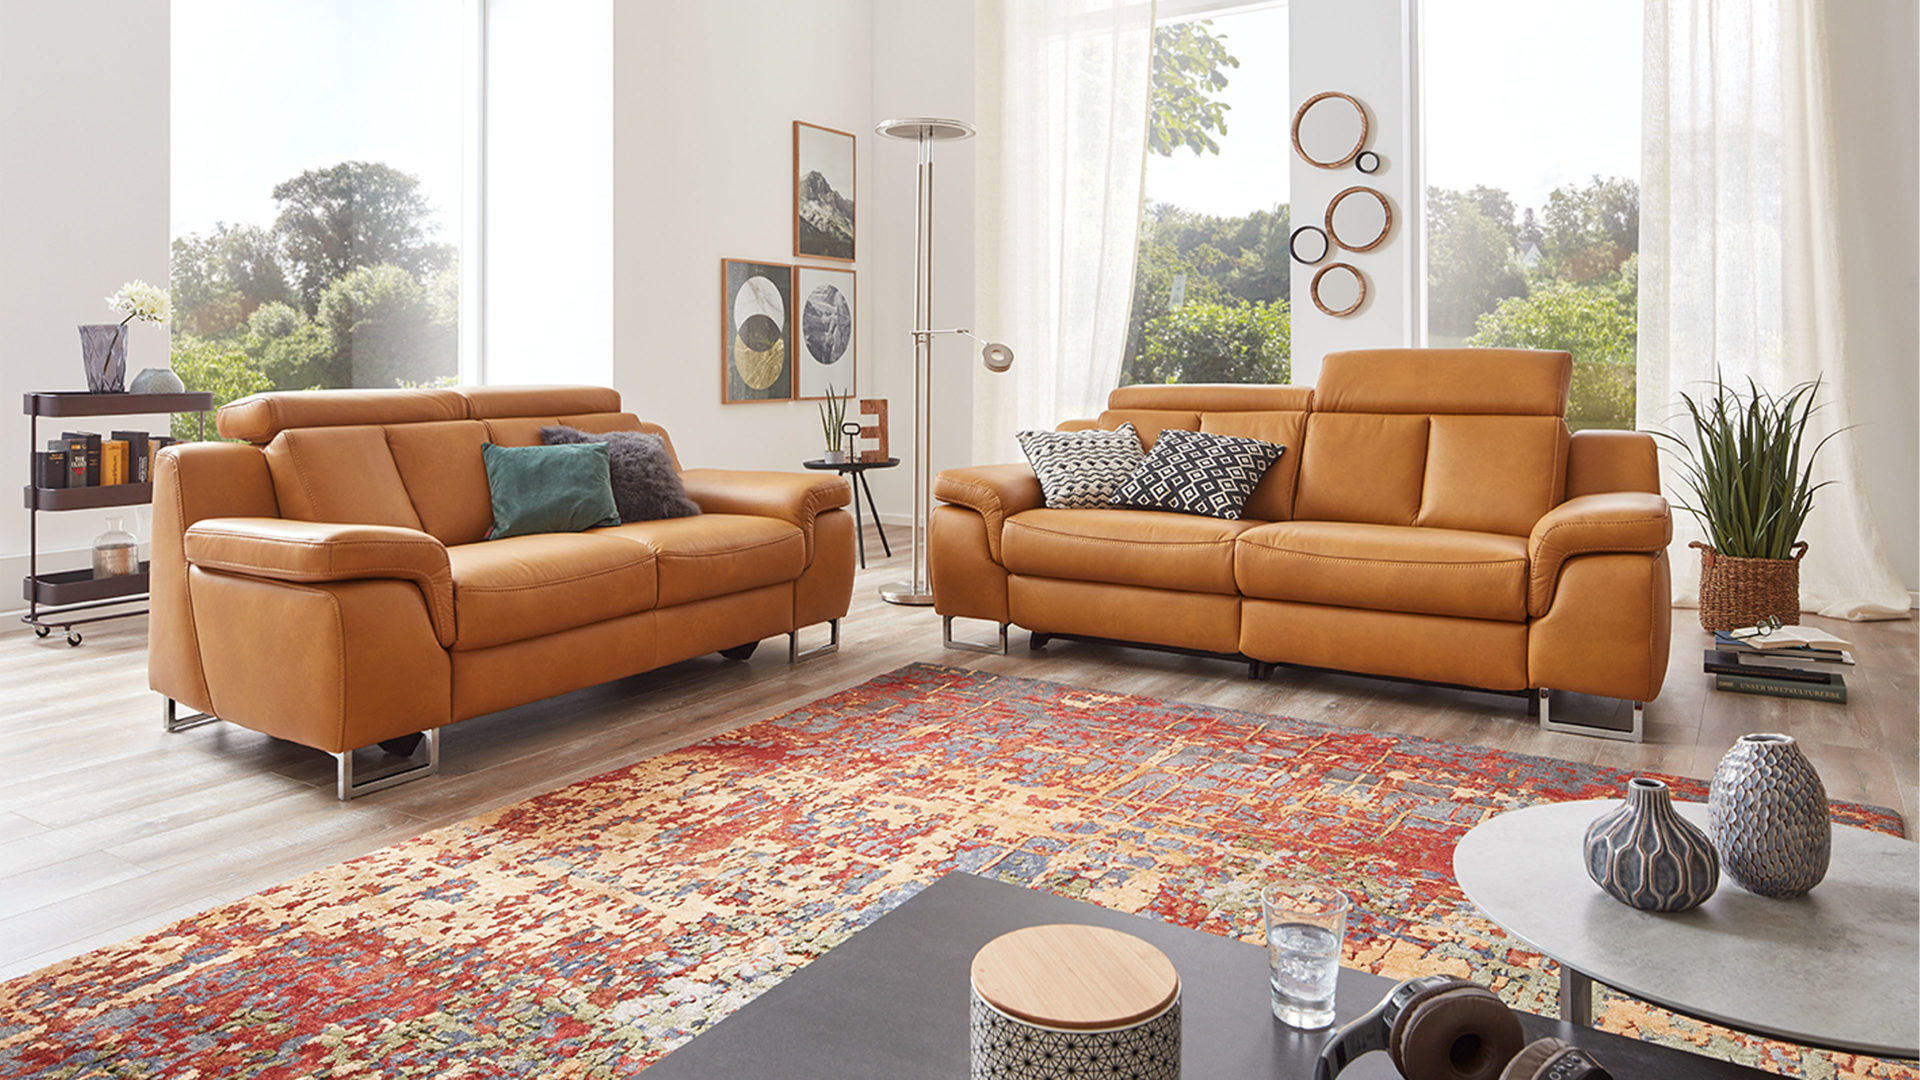 Sofa Füße Chrom Möbelhaus Franz Ohg Möbel A Z Sofas Couches Interliving